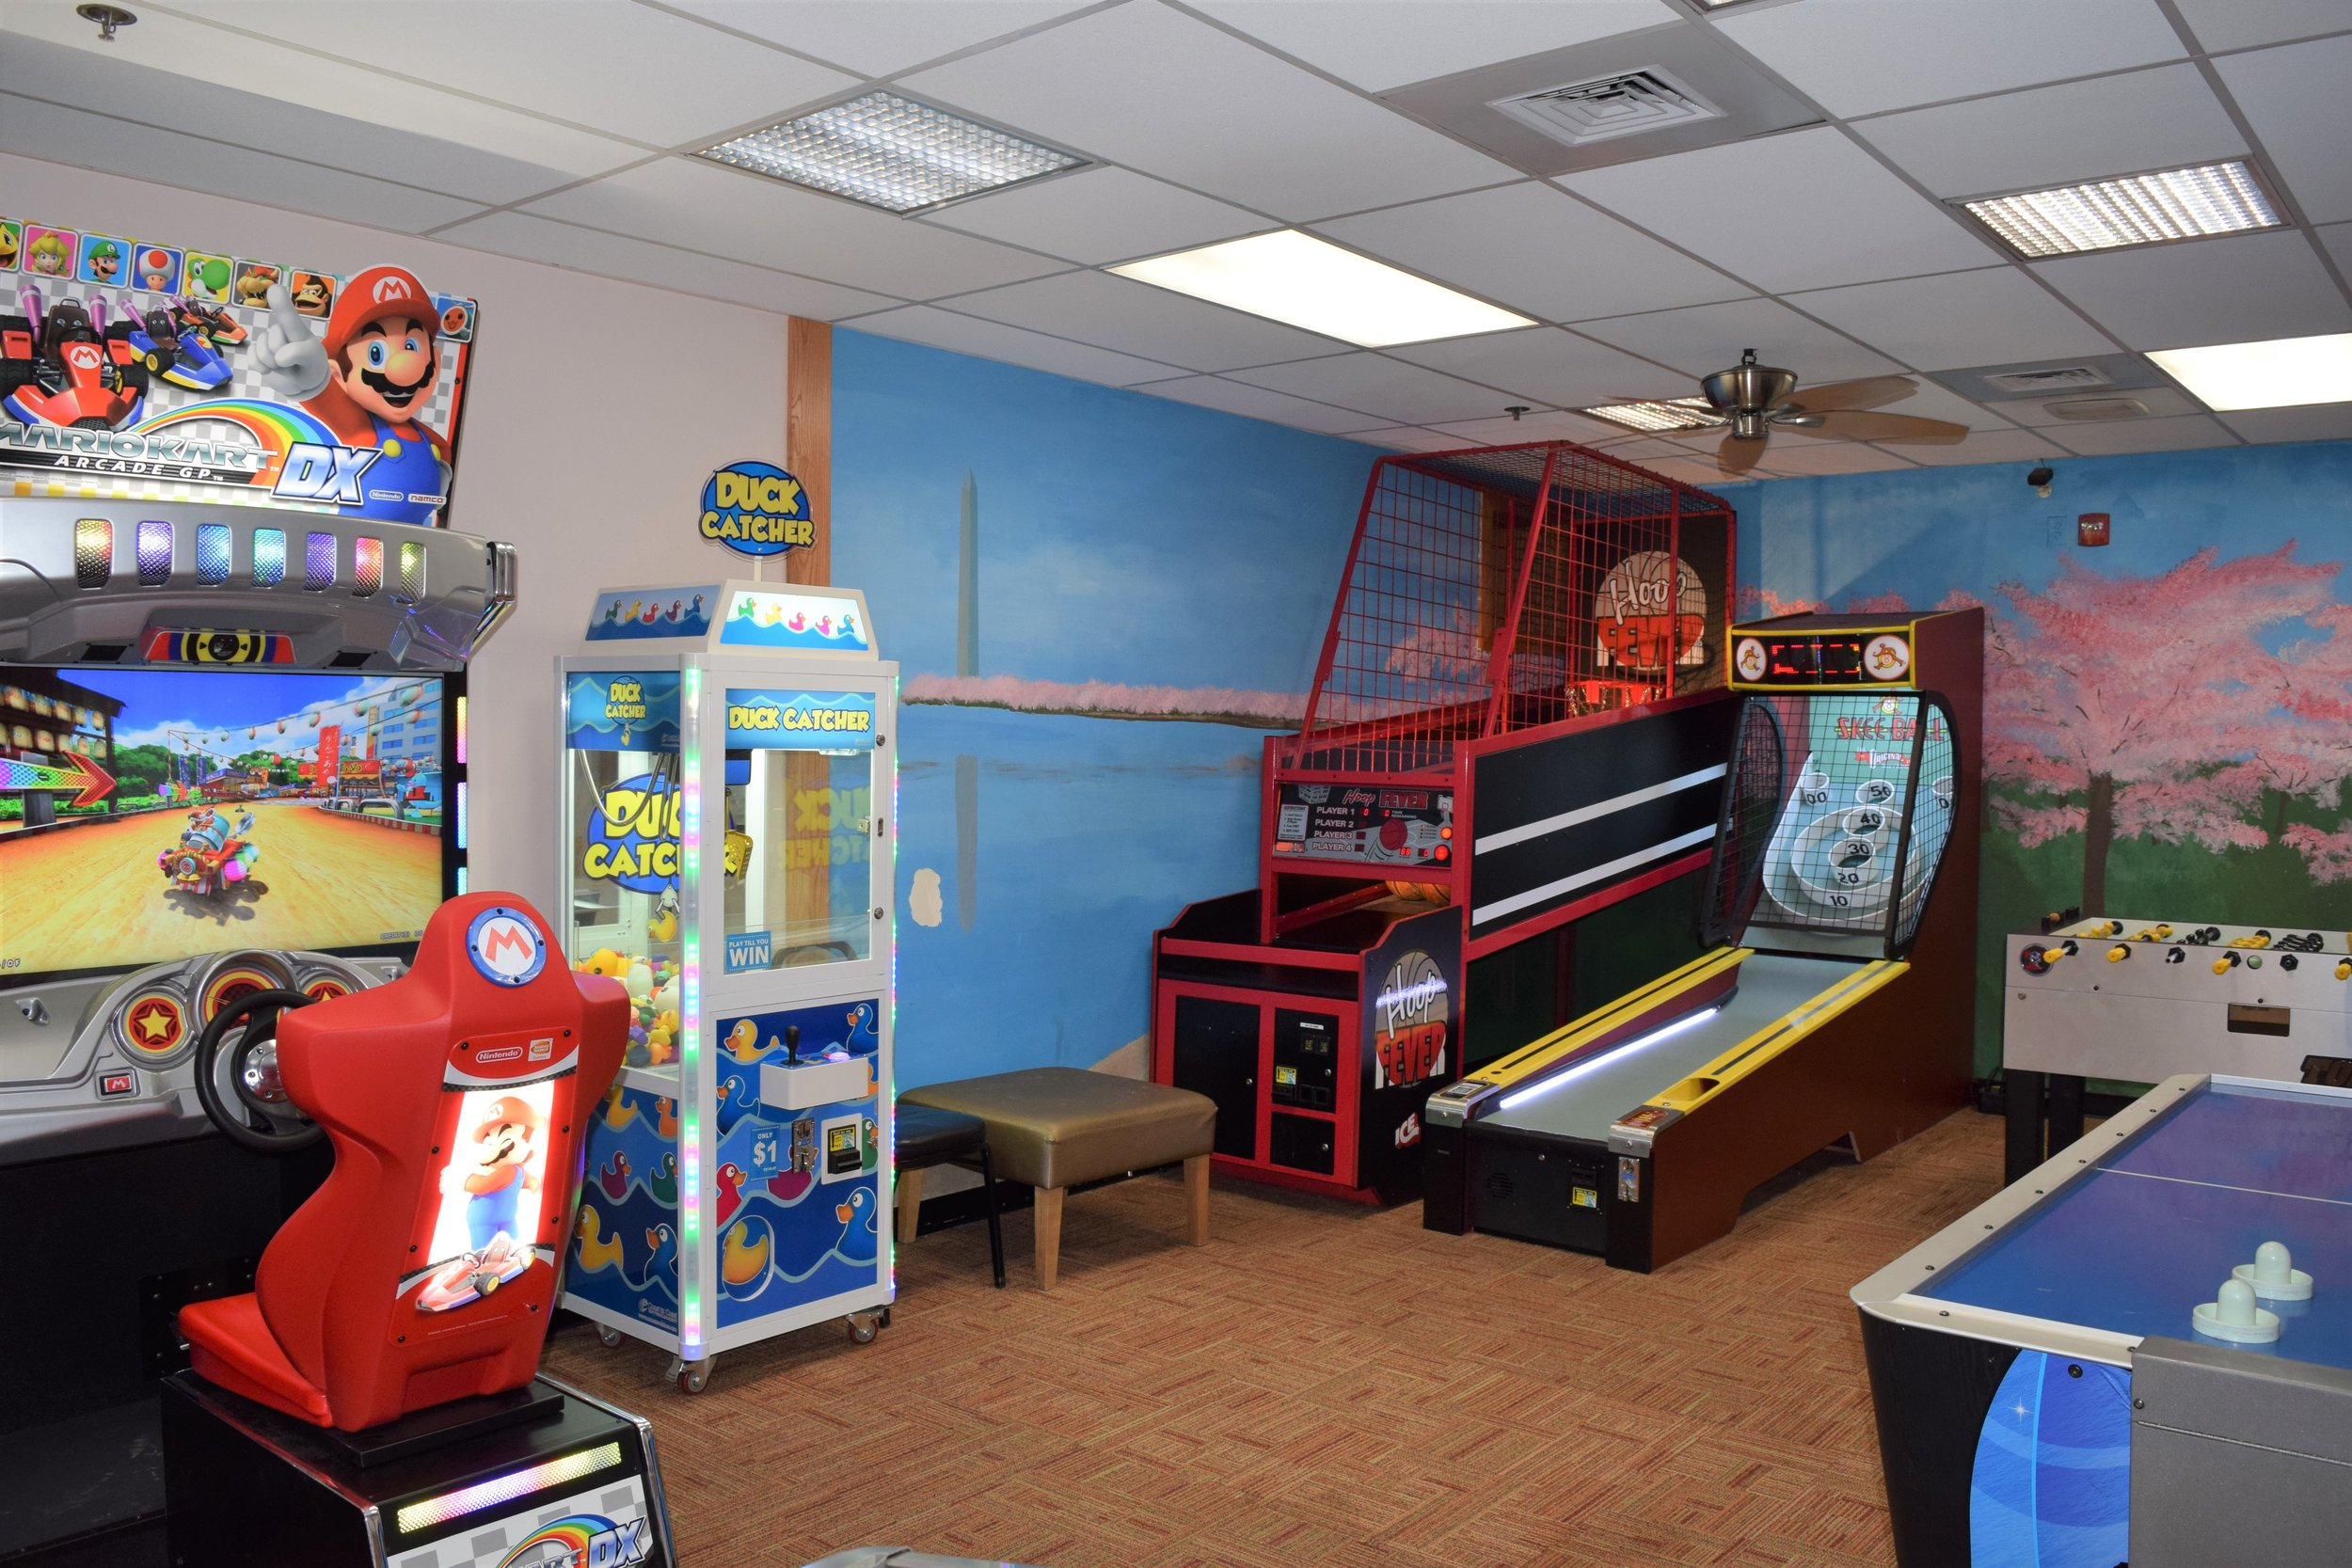 A row of arcade games at Cherry Hill Park